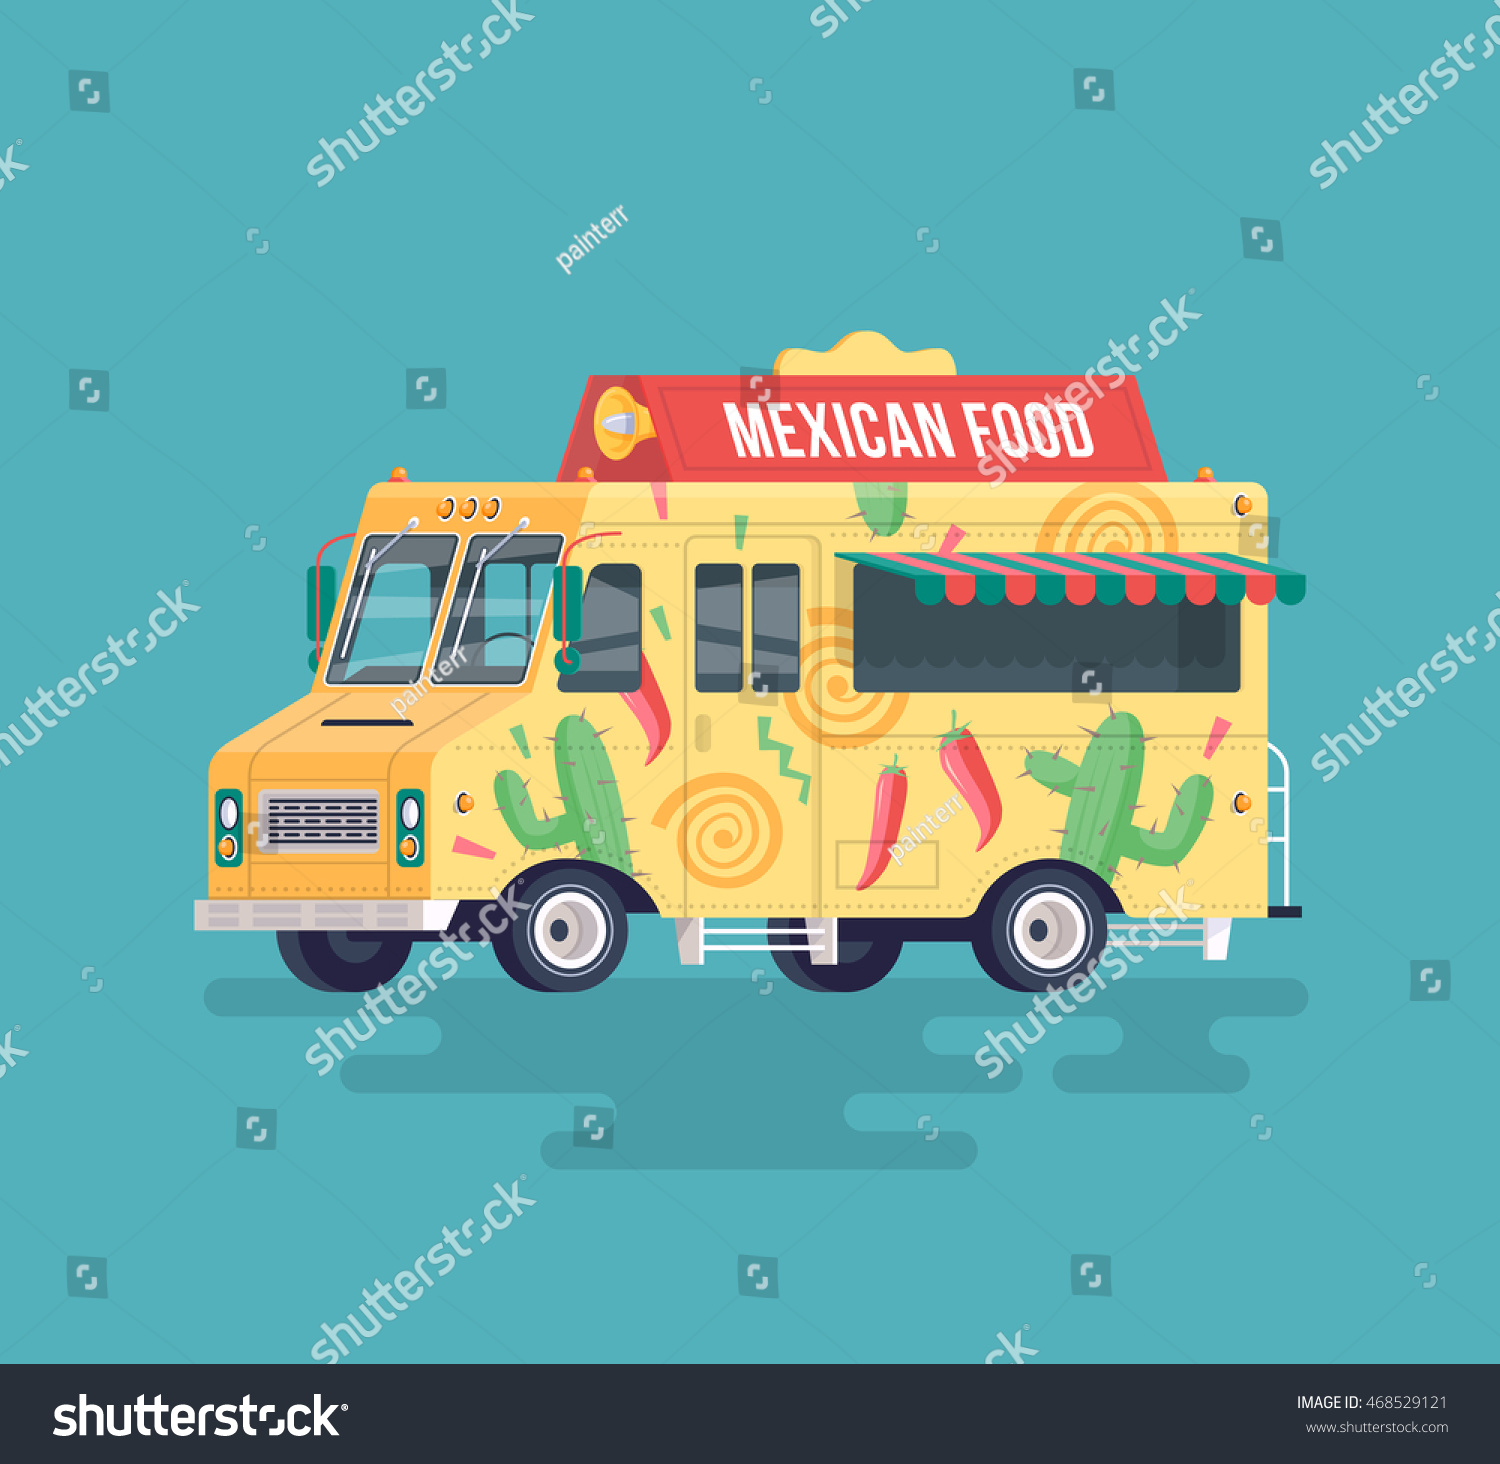 Vector Colorful Flat Mexican Food Truck Traditional Street Cuisine Cartoon